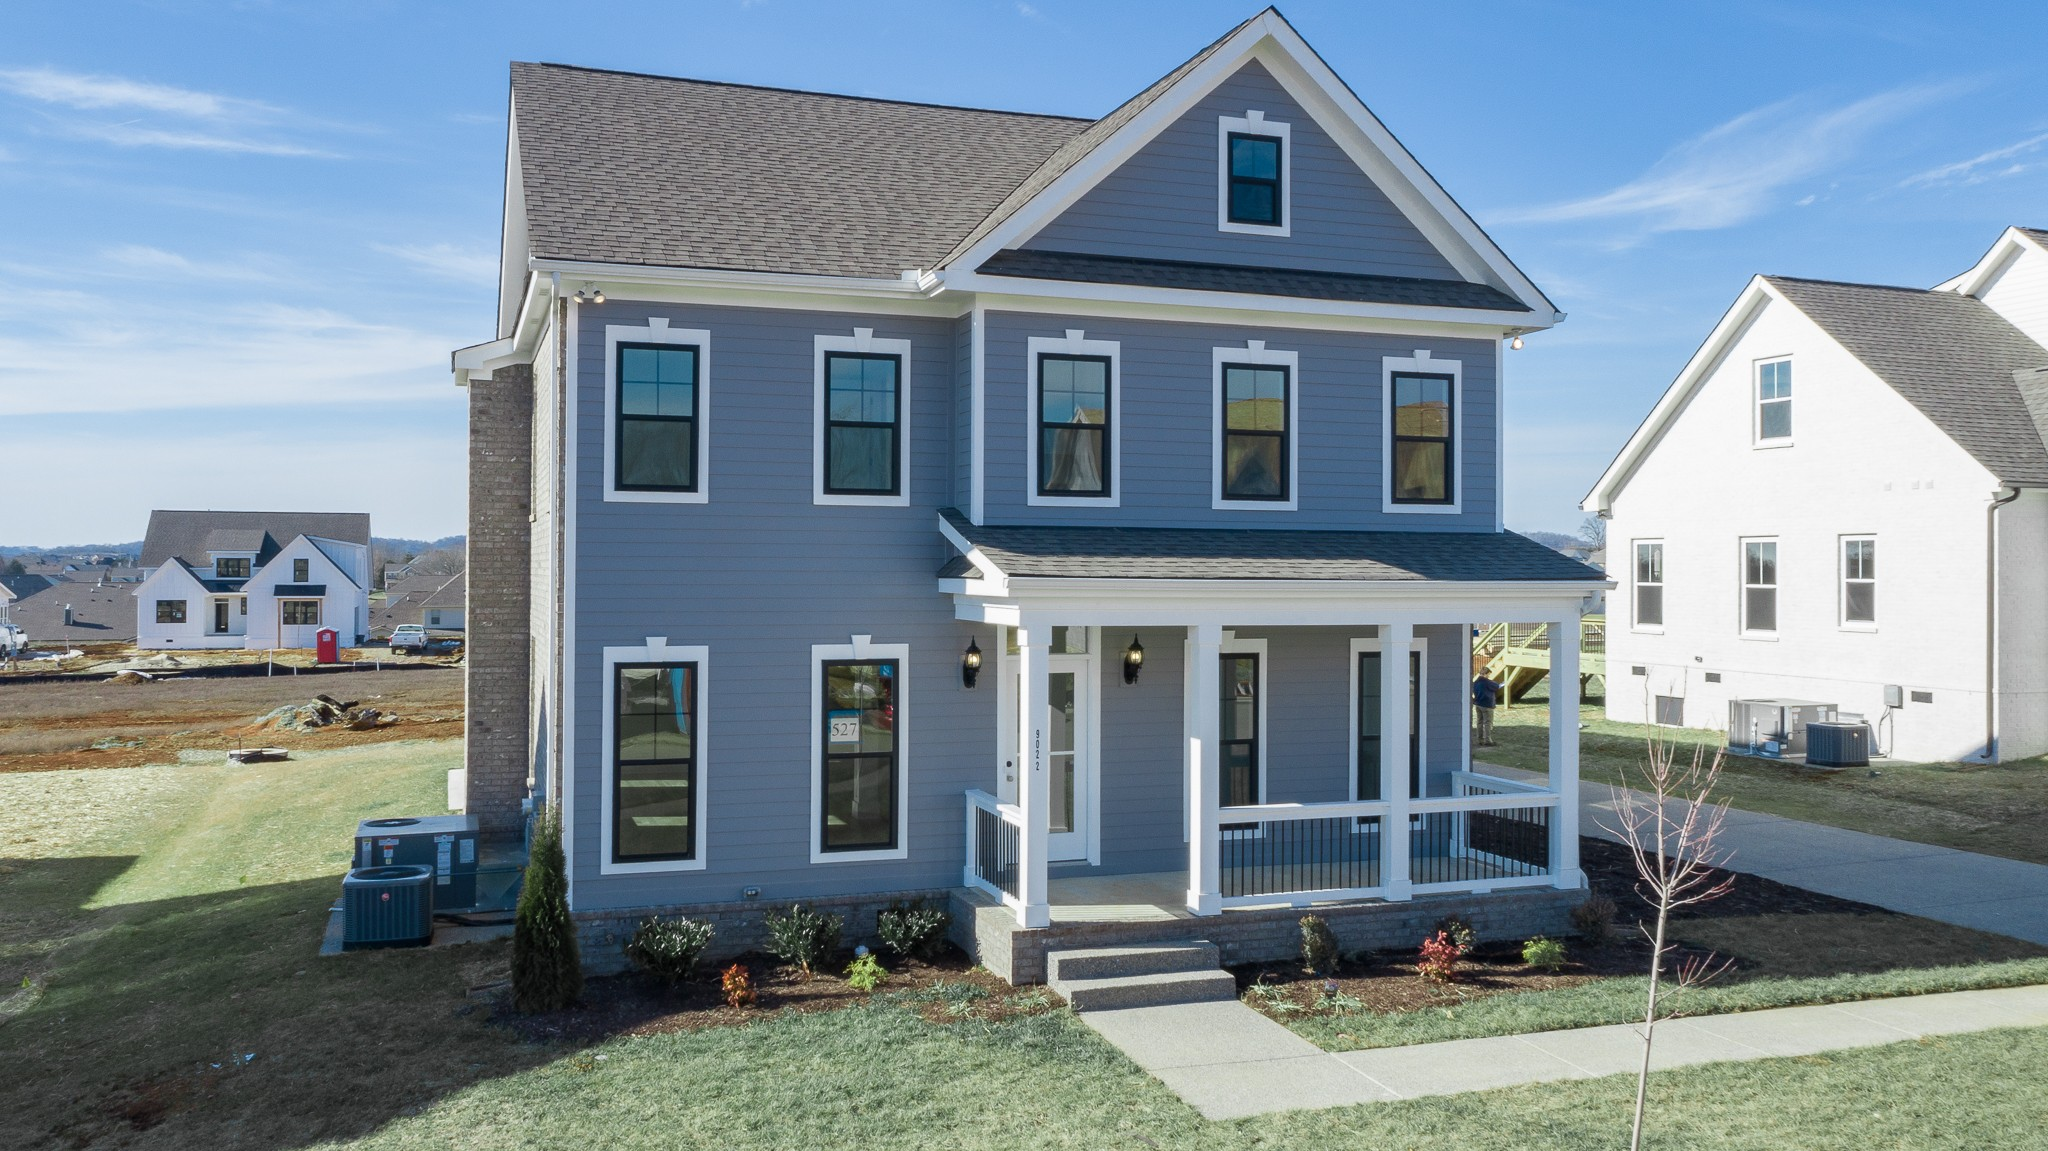 "John Maher Builder's beautiful ""Madison"" Floor Plan. Triple porches and double fireplaces! Side entry oversized garage, 4 bedroom, 3 bathrooms, amazing master bedroom/bathroom and ceramic shower in bath, free standing tub. Formal dining, granite countertops, birch cabinets w/ soft close, real sand and finish hardwoods. Gourmet kitchen with double ovens, built in gas cook top + ask for more details on this listing!"